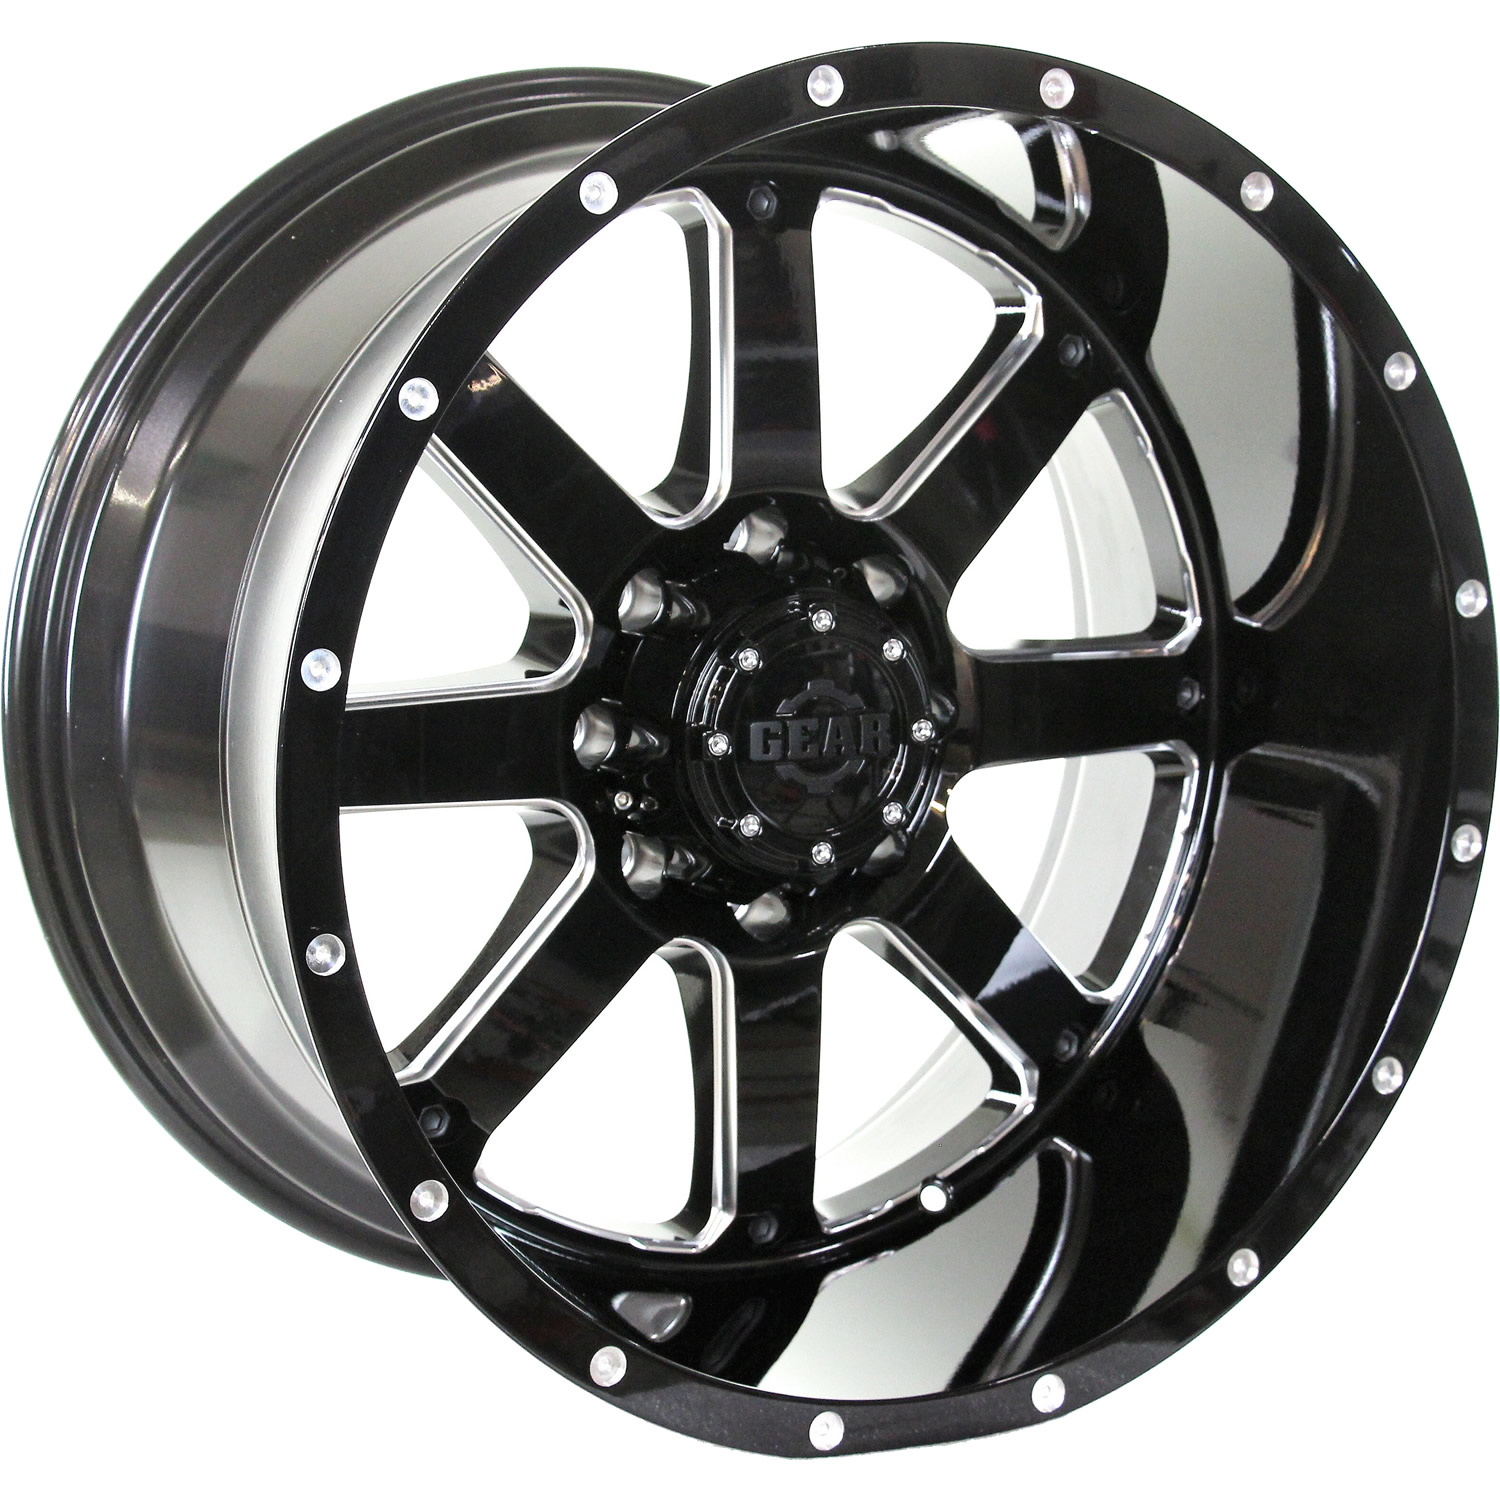 Gear Alloy Wheels Big Block 726MB